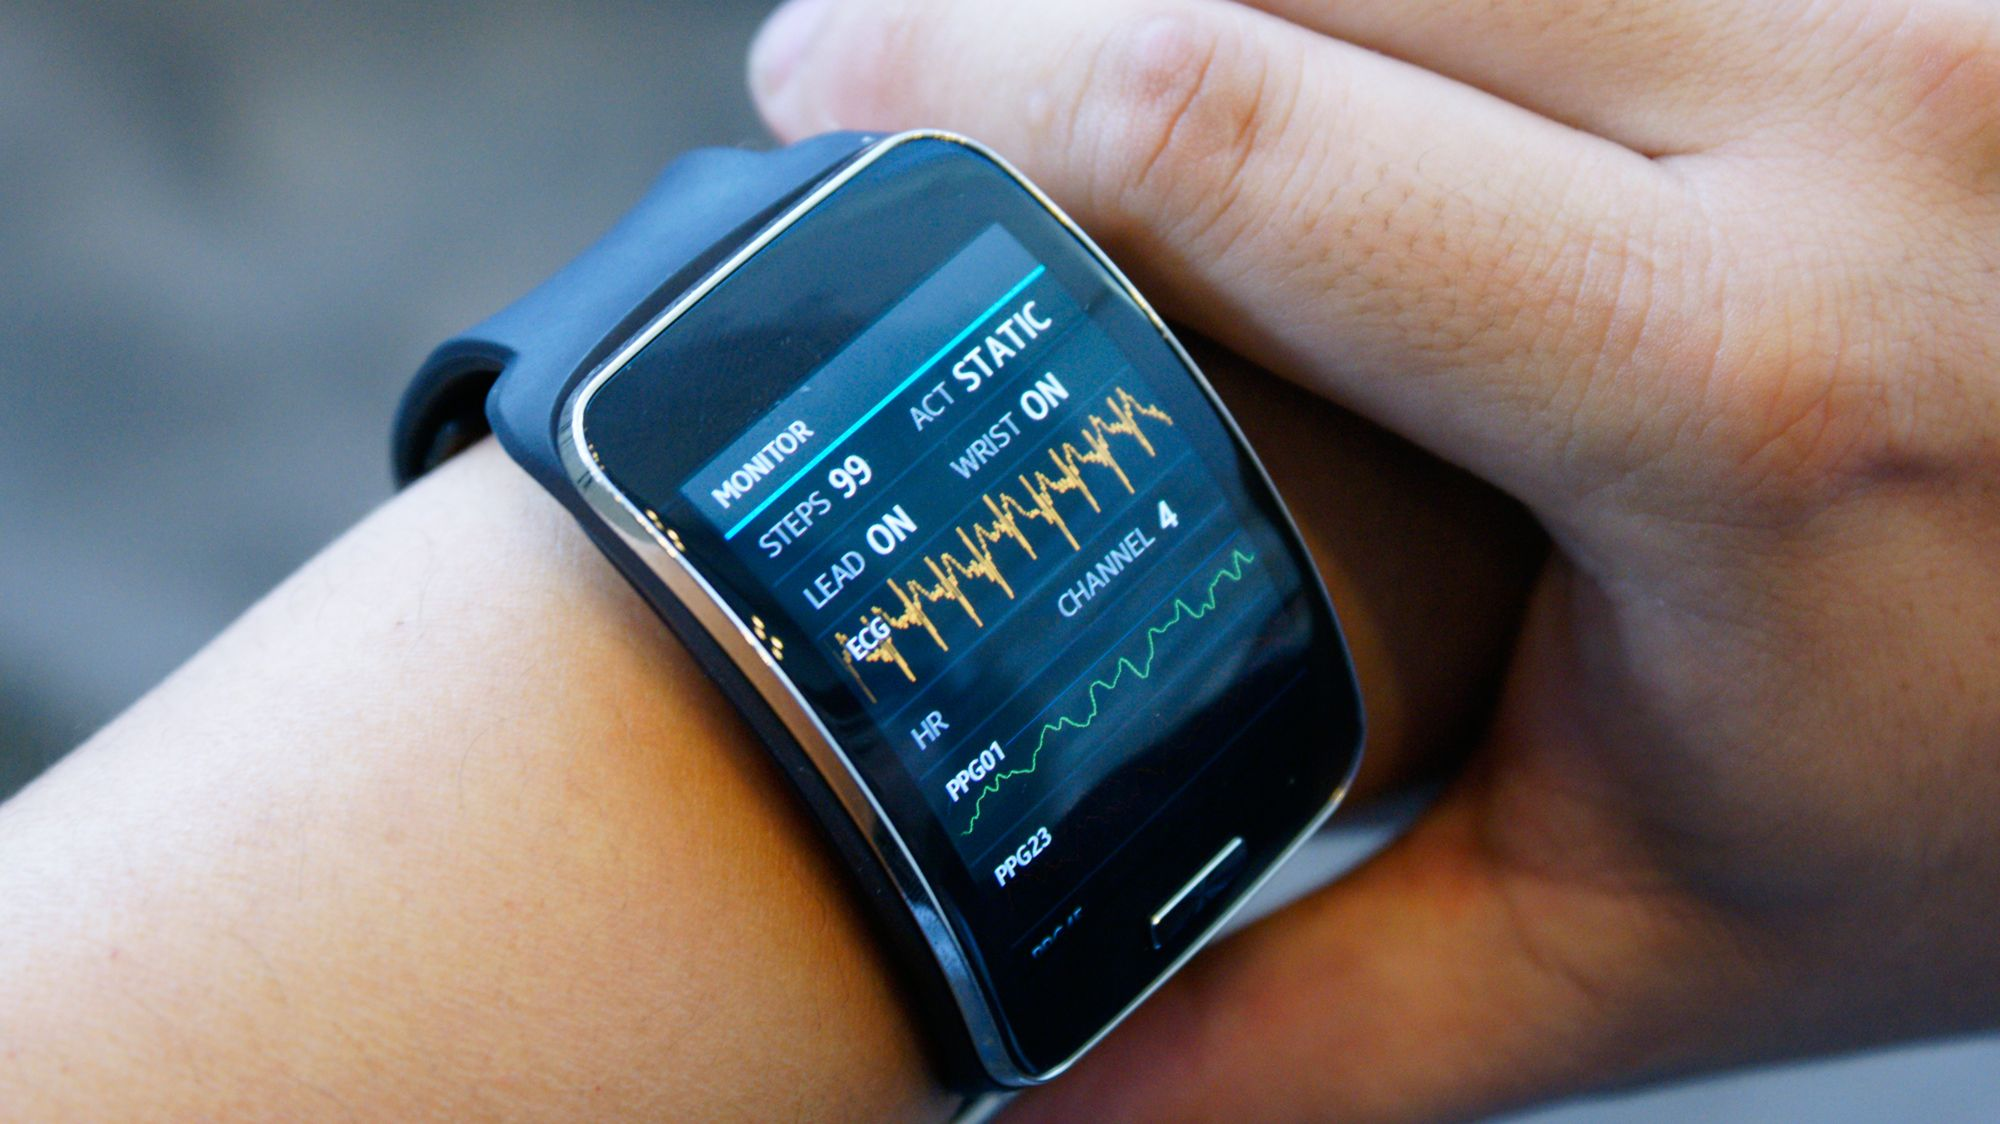 Samsung Simband- A Wearable for Monitoring your Health ...